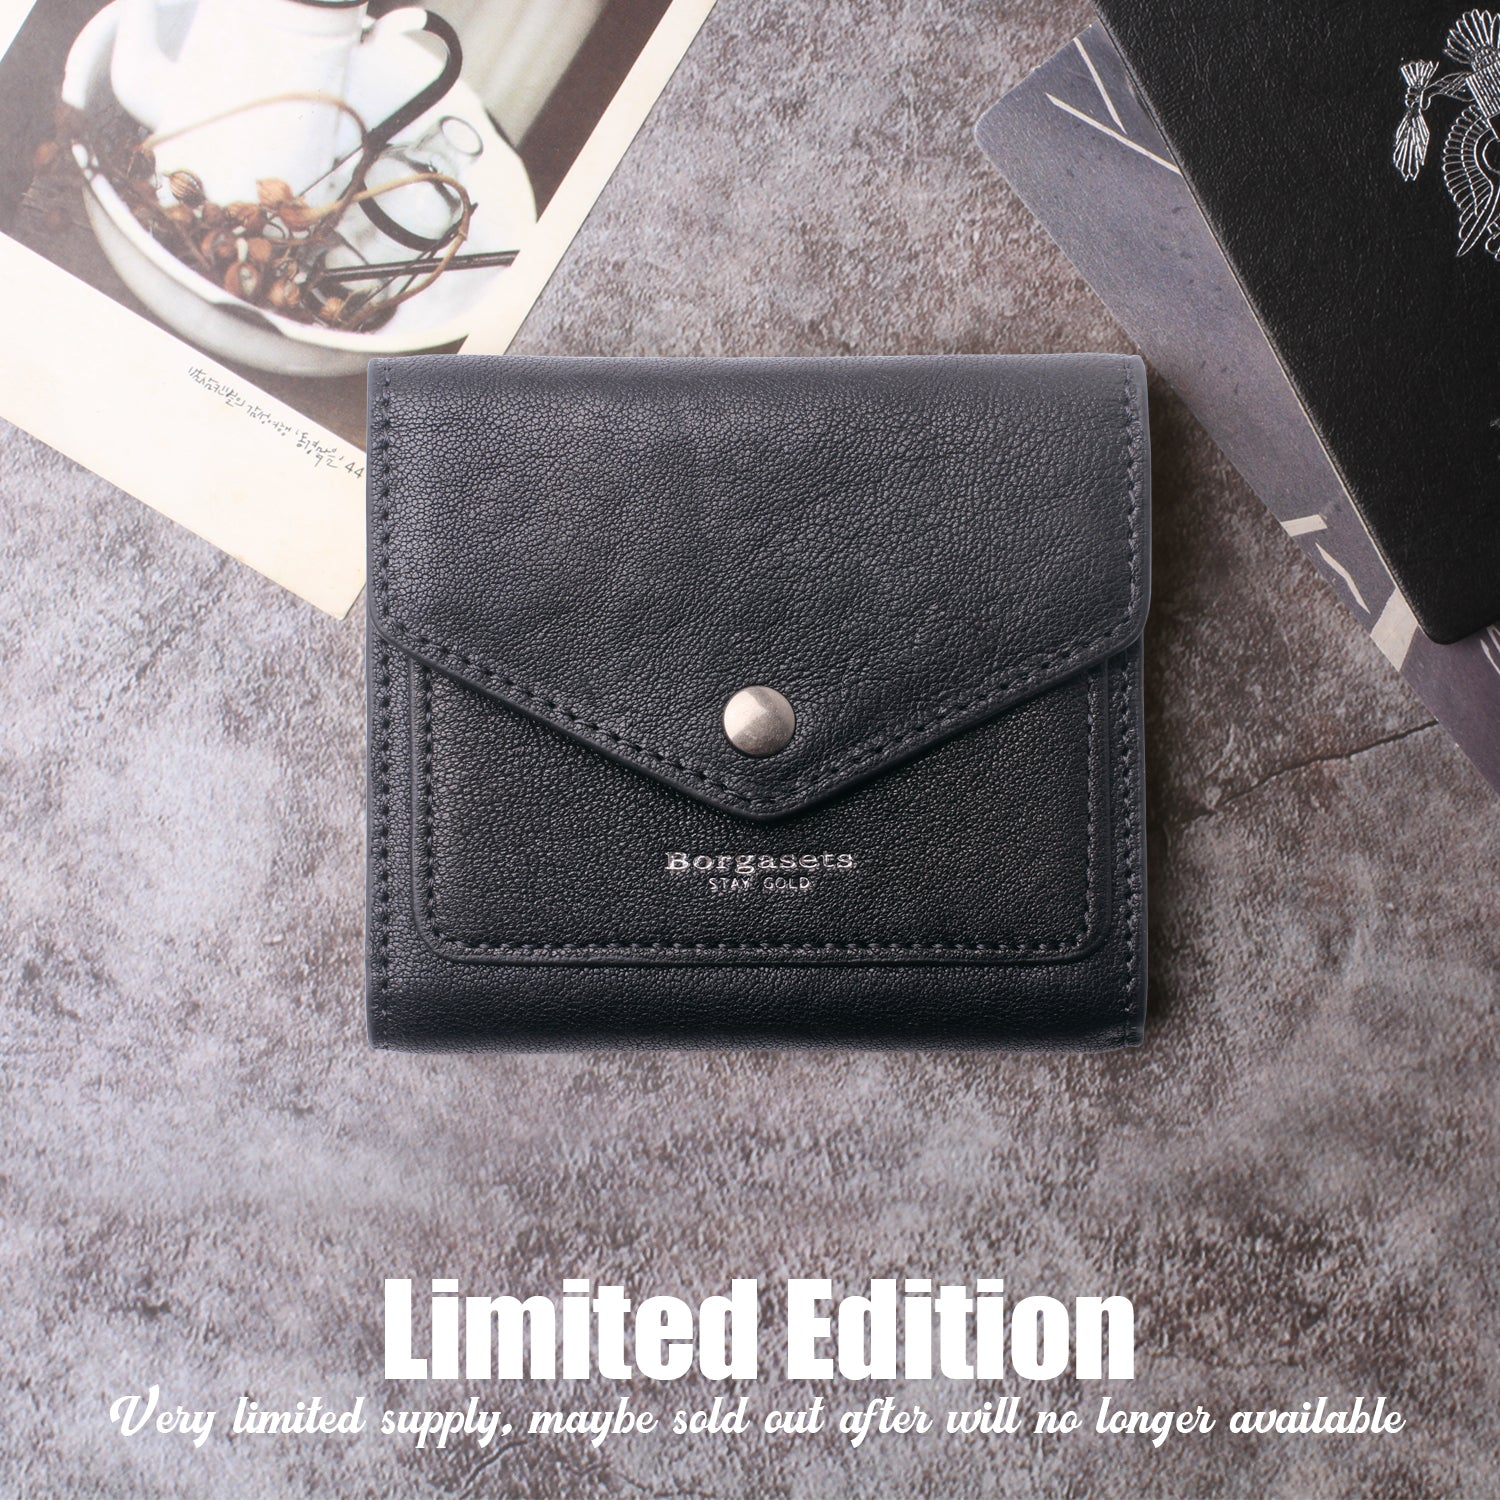 Small Leather Wallet for Women, RFID Blocking Women's Credit Card Holder Mini Bifold Pocket Purse BG1023 Tanned black - Borgasets